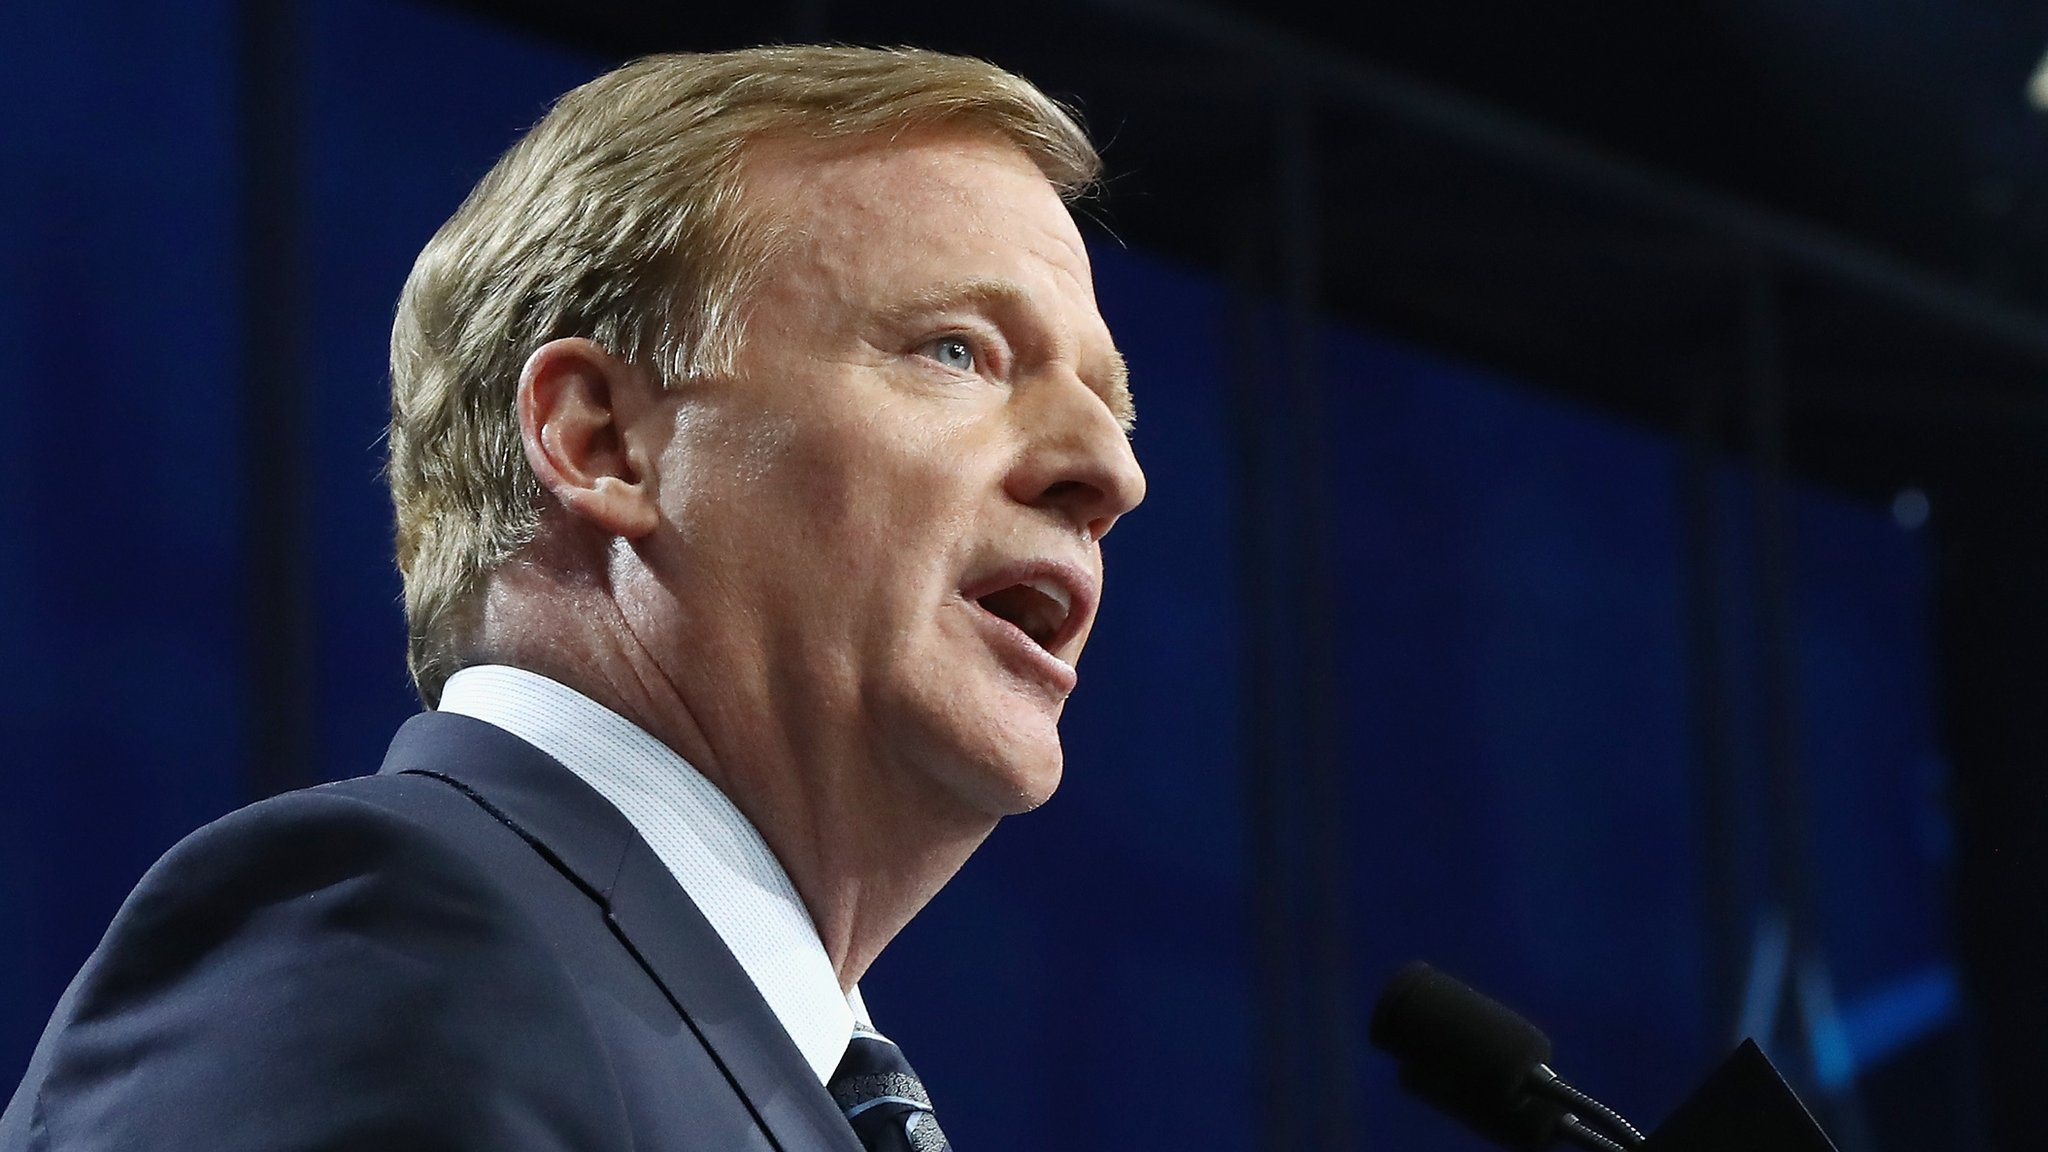 NFL integrity must be protected after gambling legalisation - Goodell